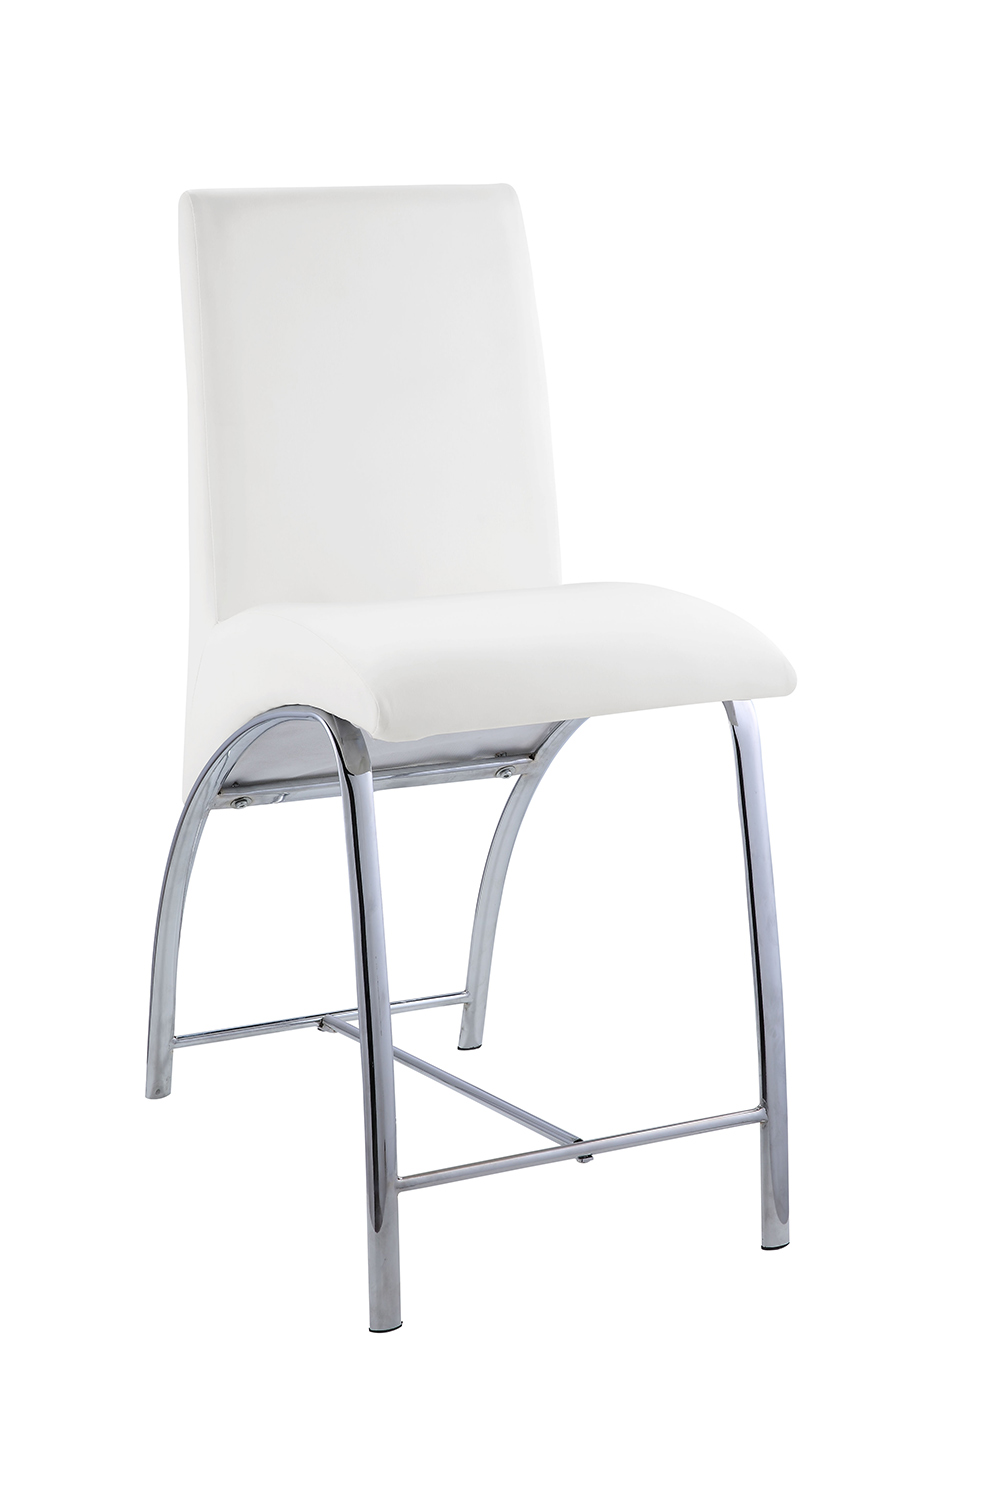 Acme Gordie Curved Metal Shape Counter Height Chair - White Vinyl/Chrome